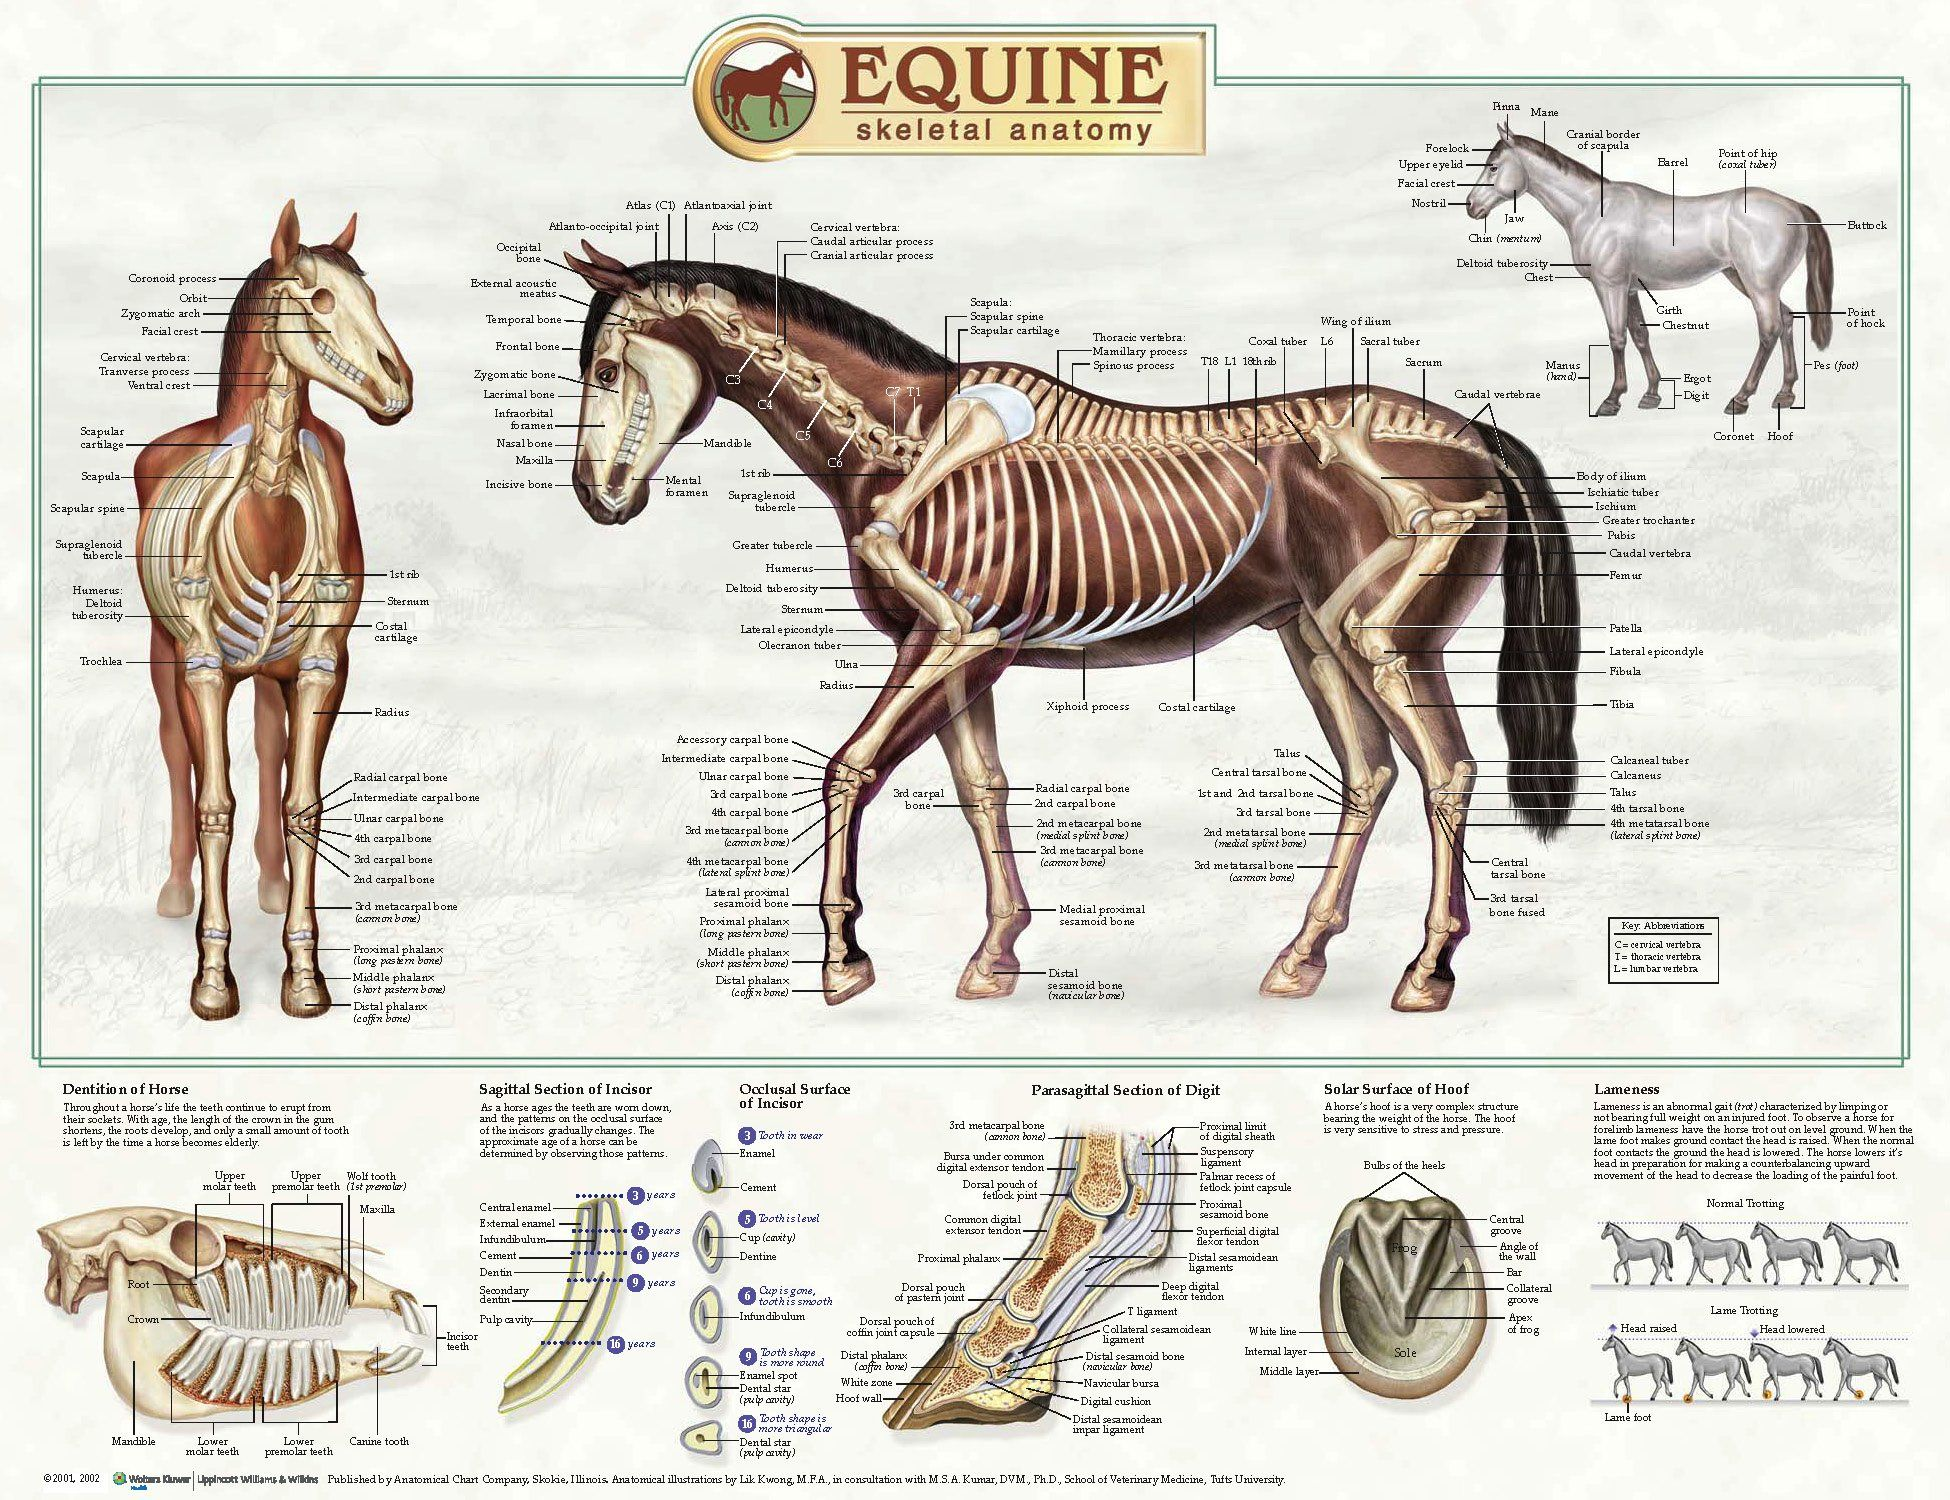 Reproductive cycle in horses